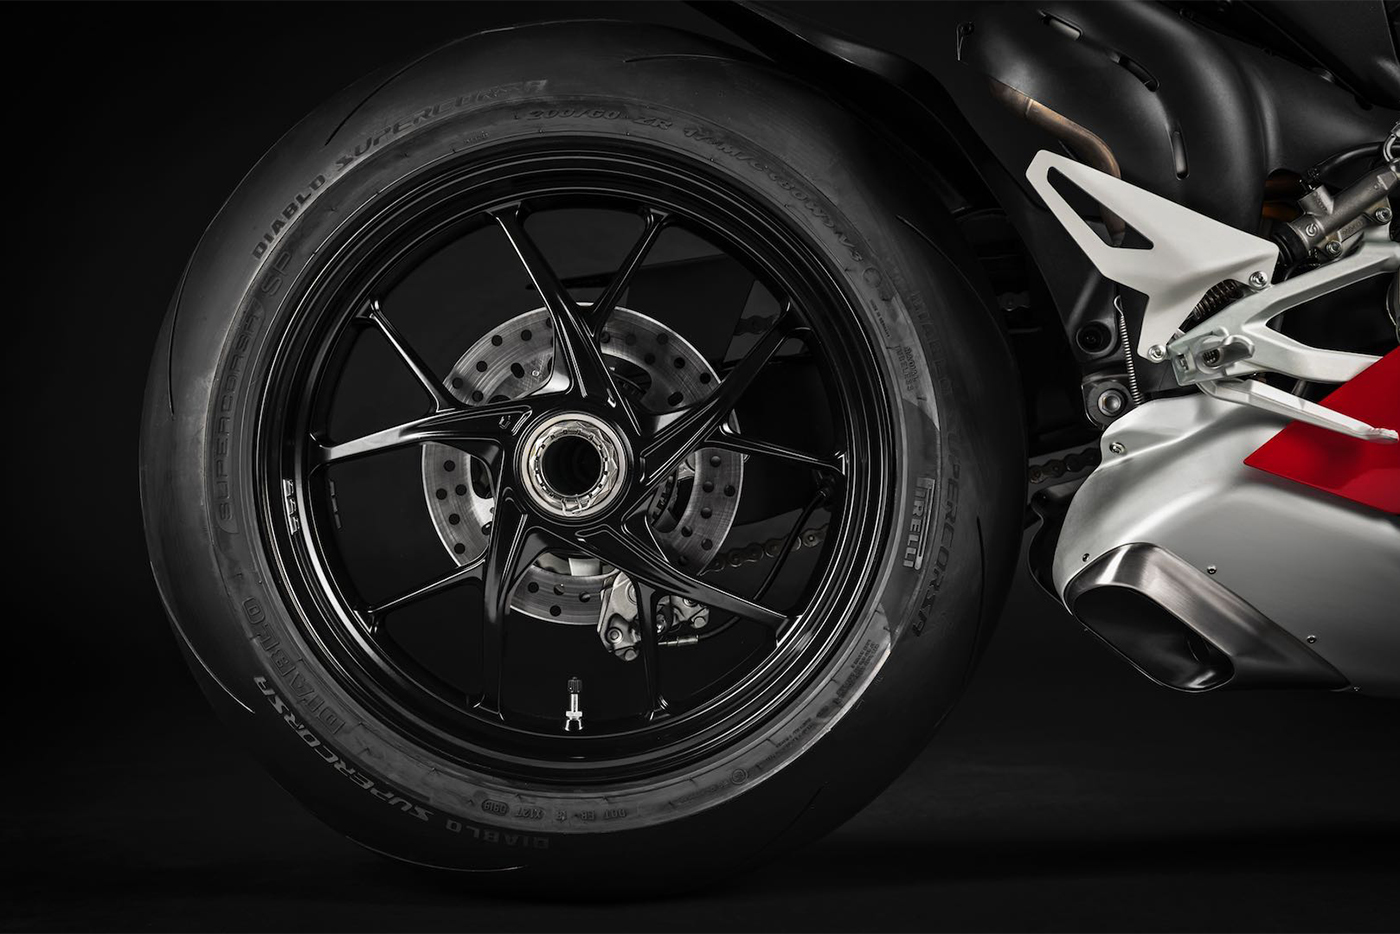 2020-ducati-panigale-v4-first-look-fast-facts-5.jpg